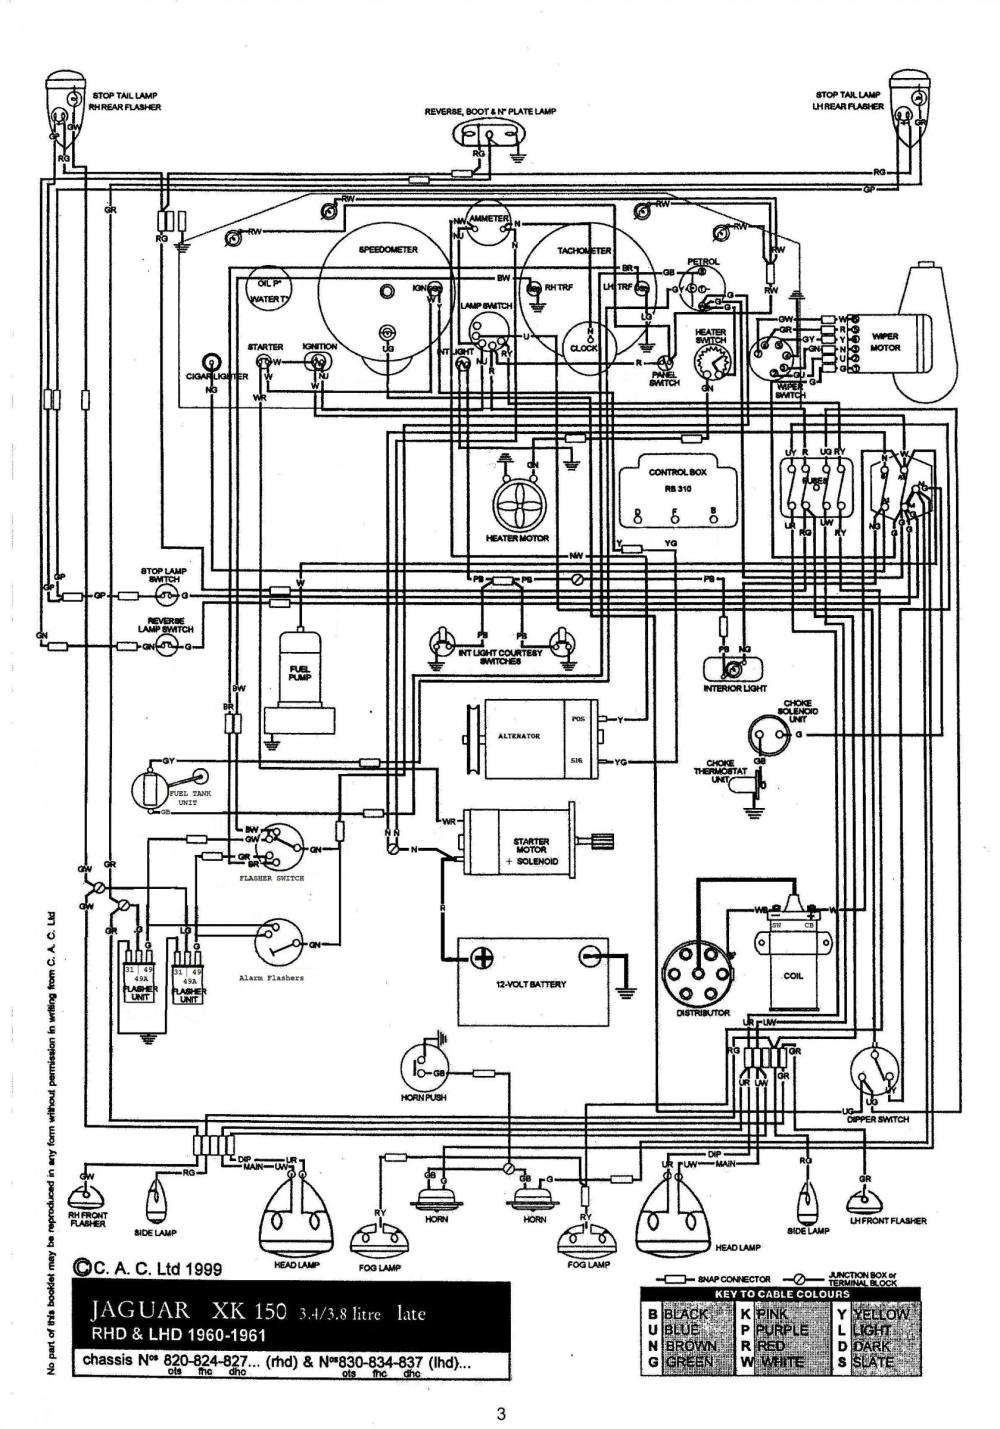 medium resolution of info needed for xk150 early alternator amp earth conversion xk150 wire